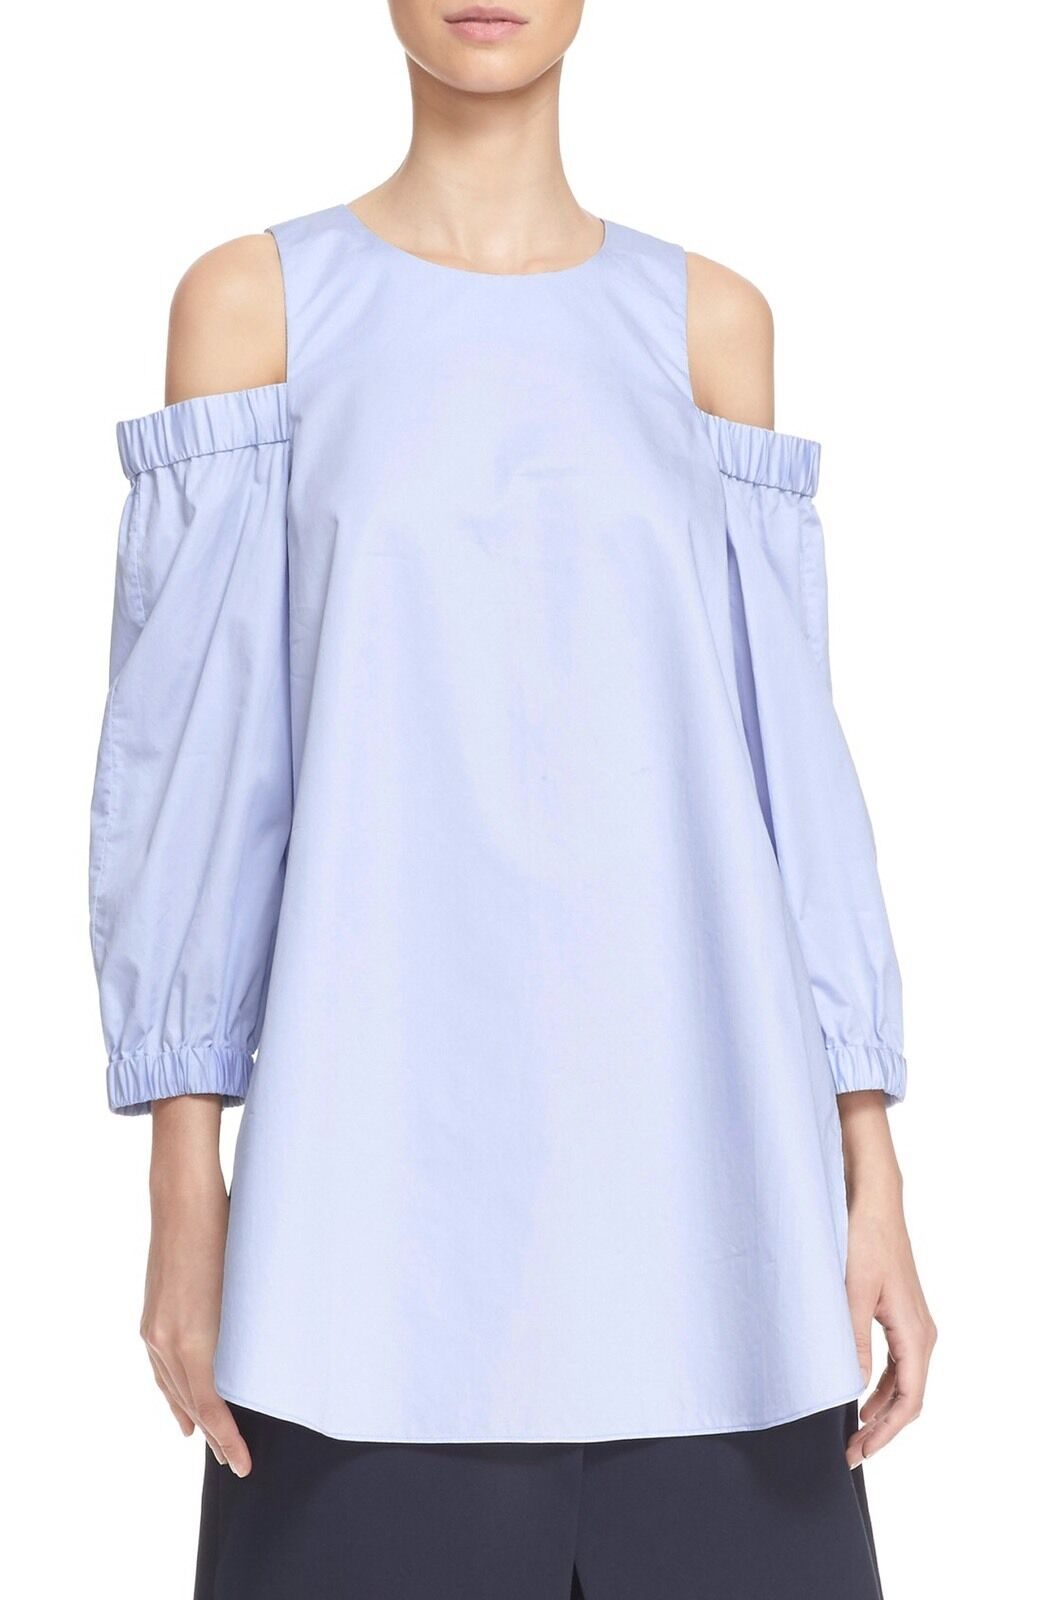 TIBI Blau Cotton Satin Poplin Cold Shoulder Tunic Top Shirt S Small Soldout